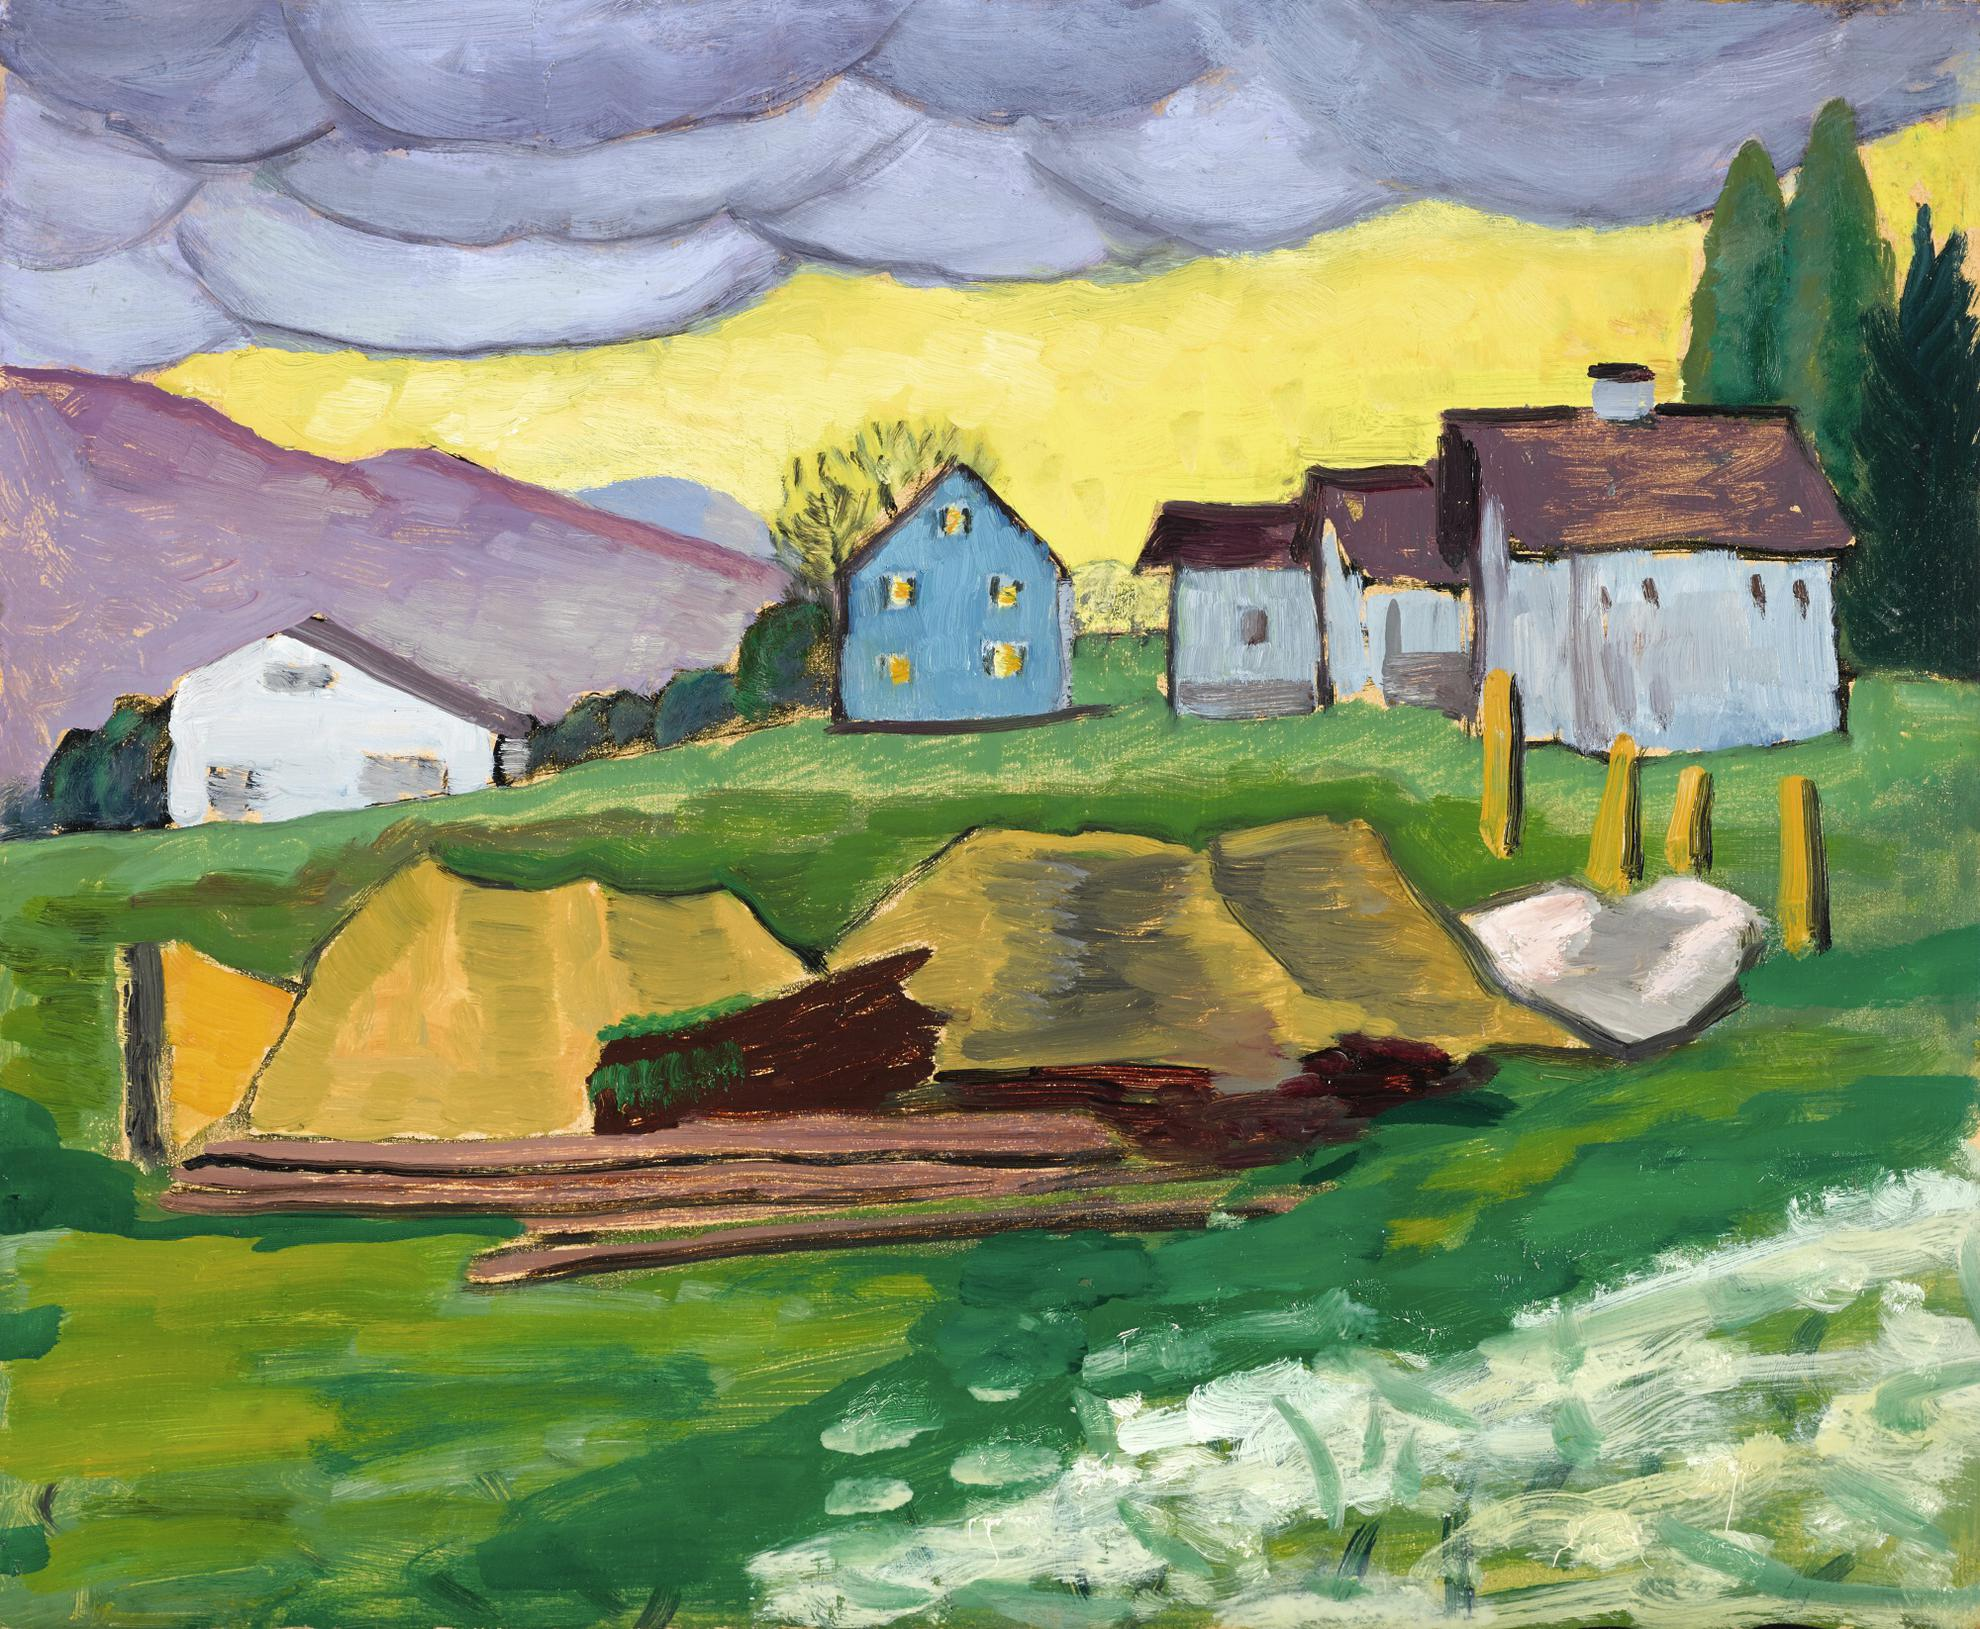 Gabriele Munter-Landschaft Mit Blauen Hausern (Landscape With Blue Houses)-1936